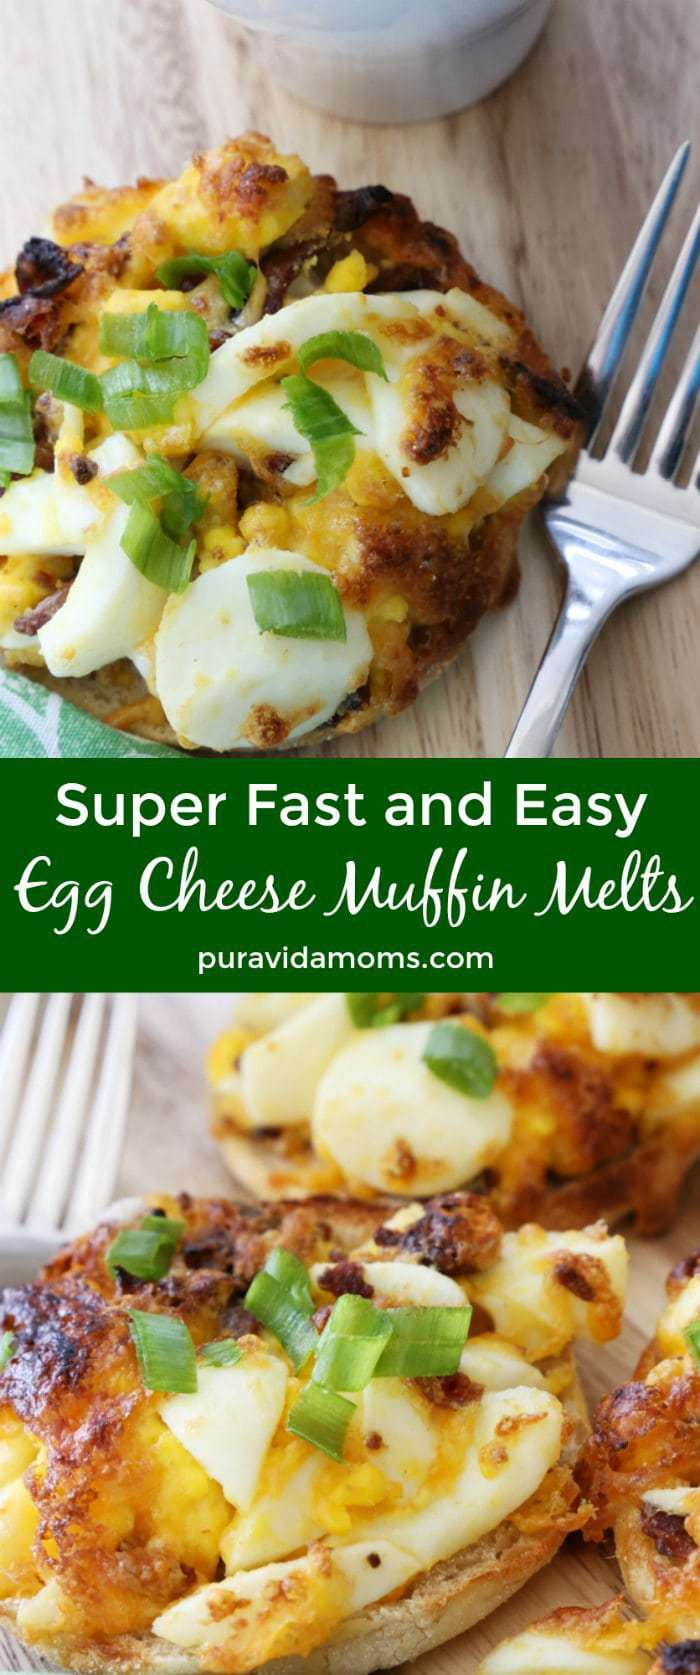 This super fast breakfast will please a crowd- it's so easy to make these egg cheese muffin melts that the recipe will become a household staple- I promise!